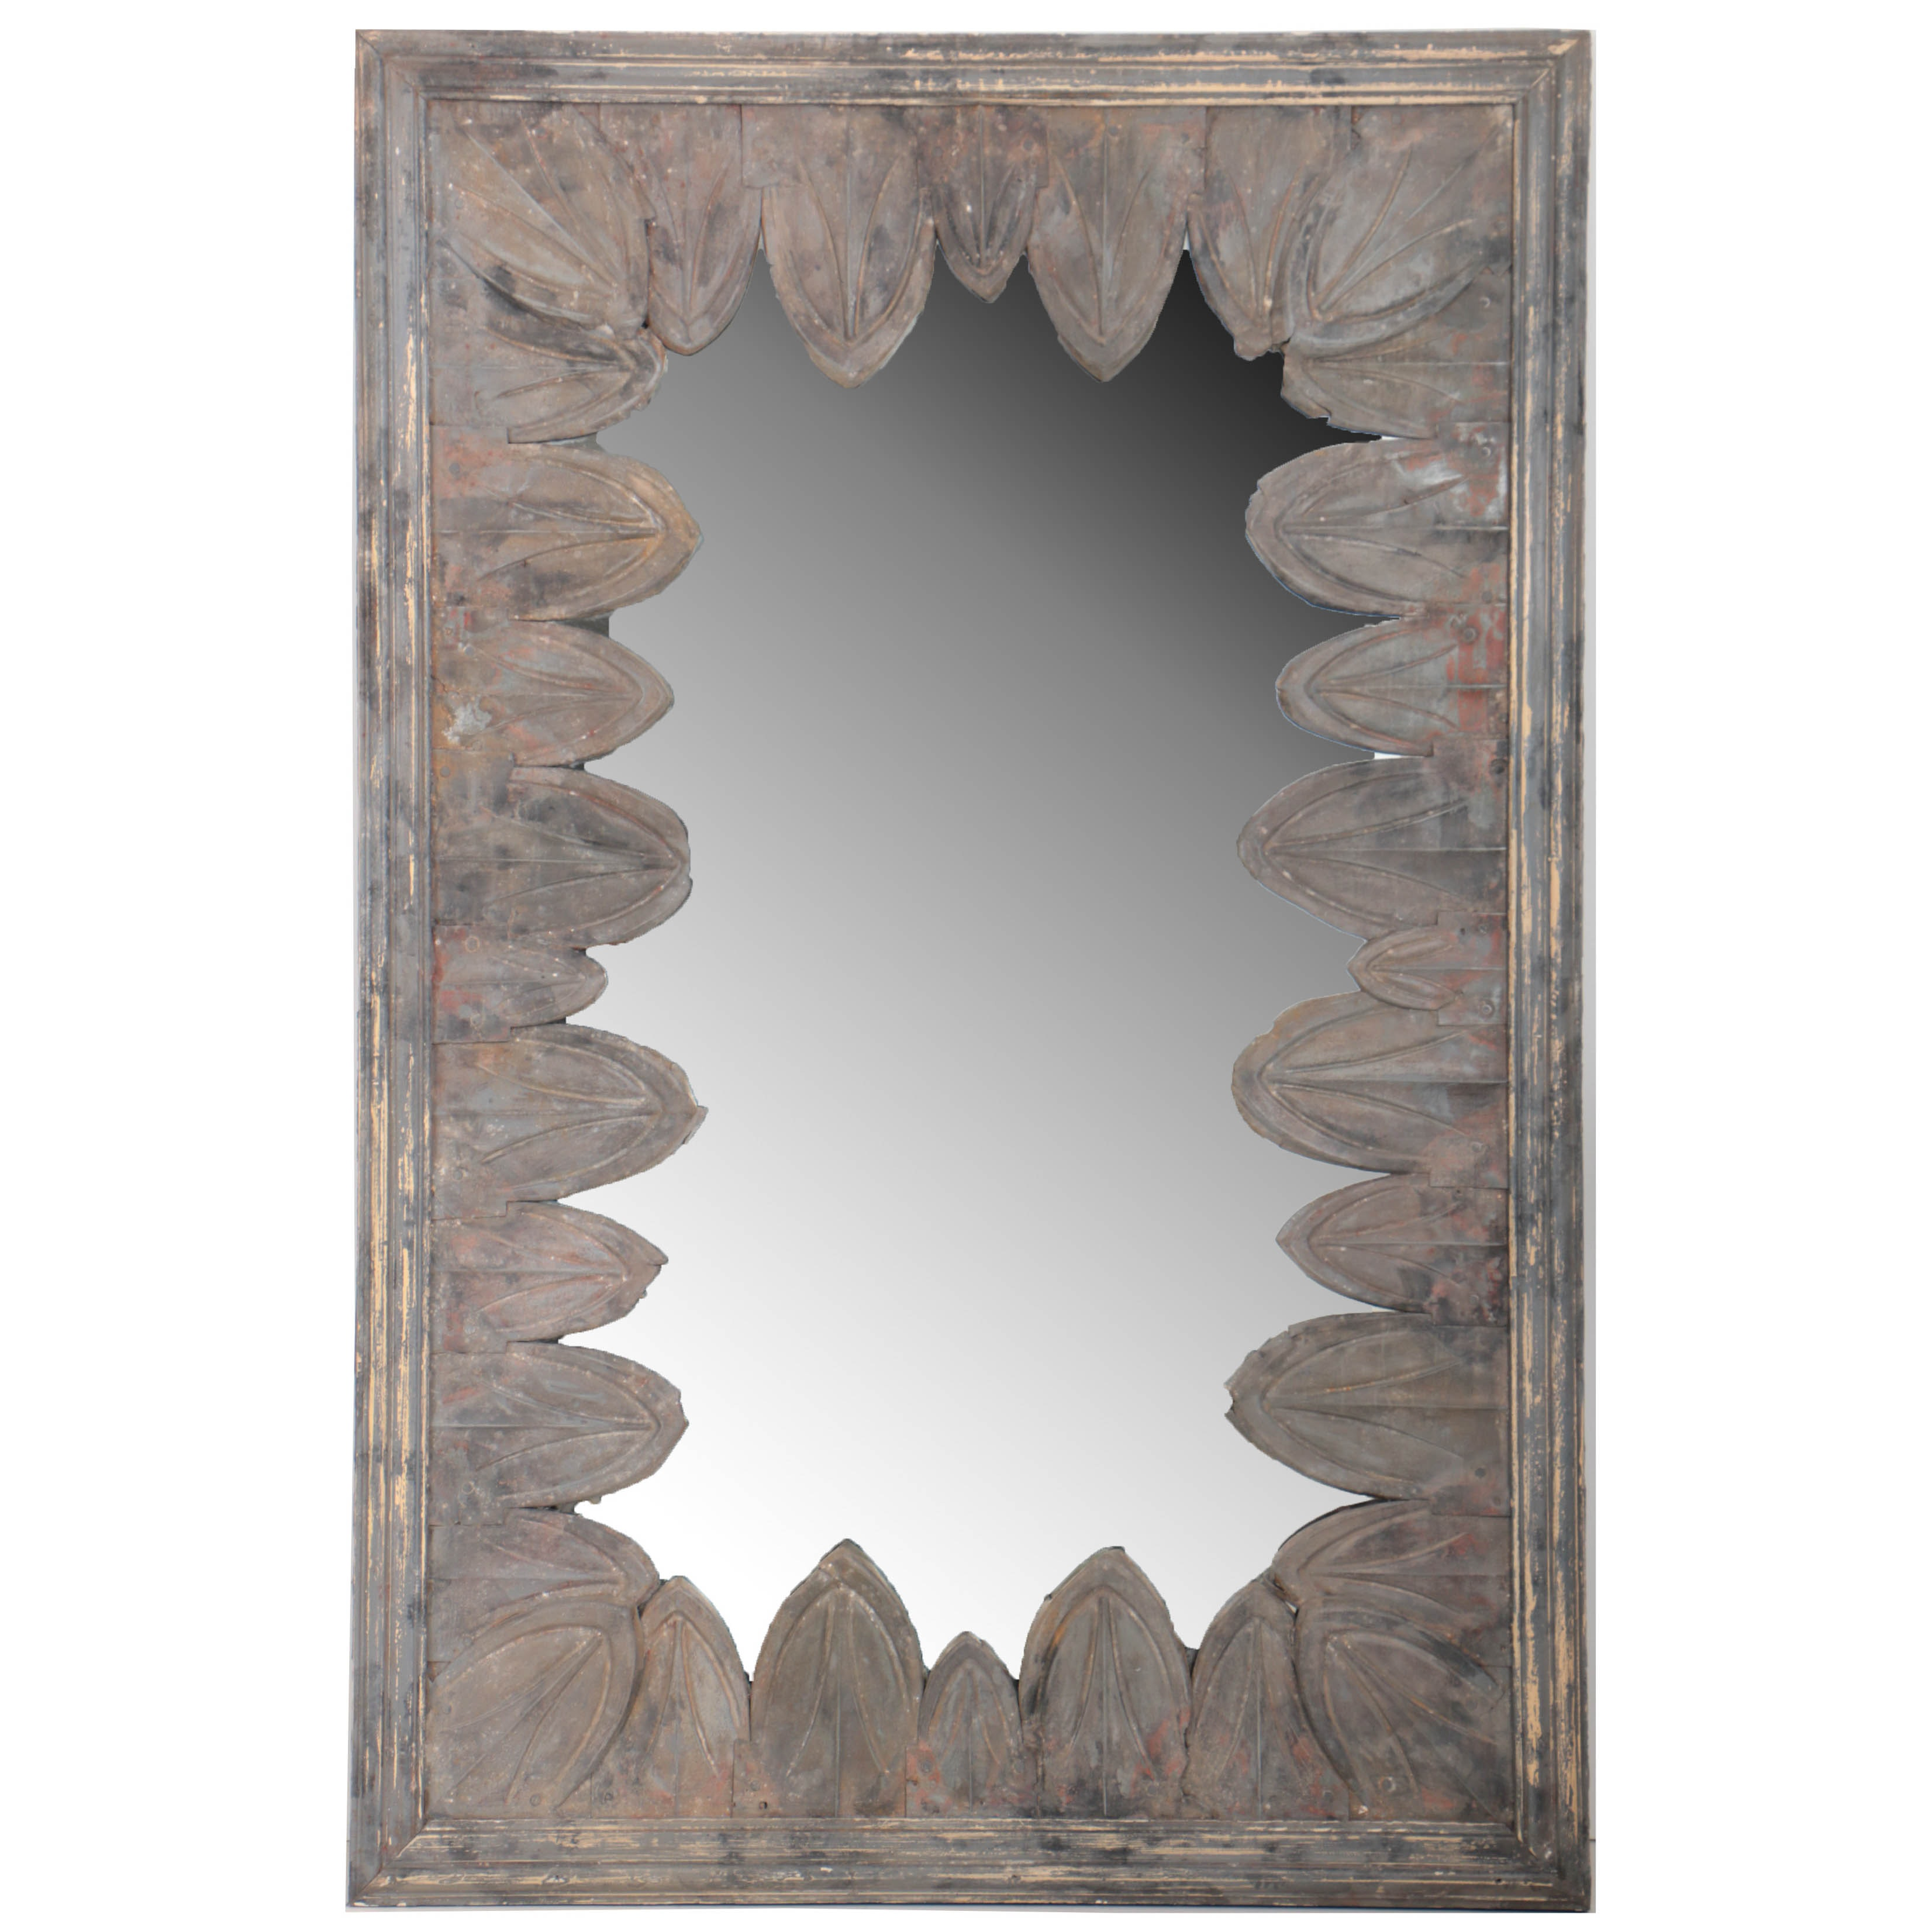 Monumental French Art Deco Mirror With Overlapping Zinc Petals